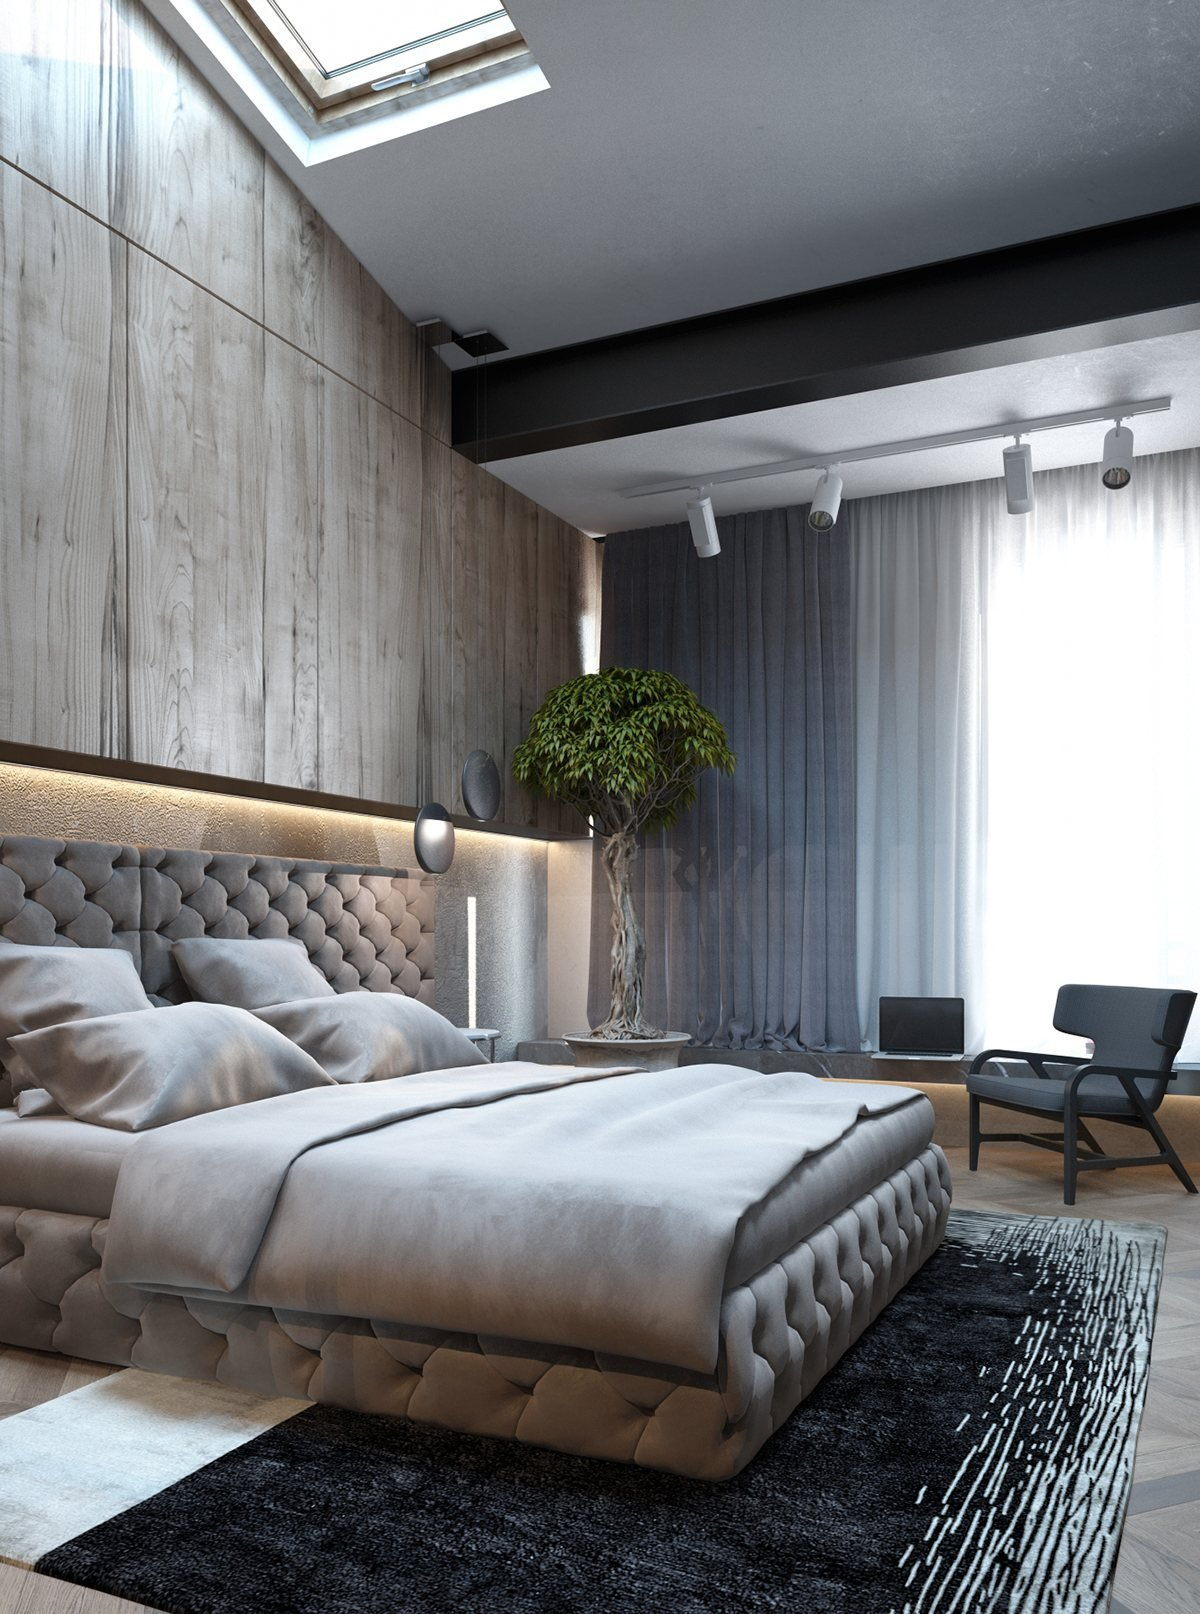 Best Homes With Inspiring Wall Treatments And Designer Lighting With Pictures